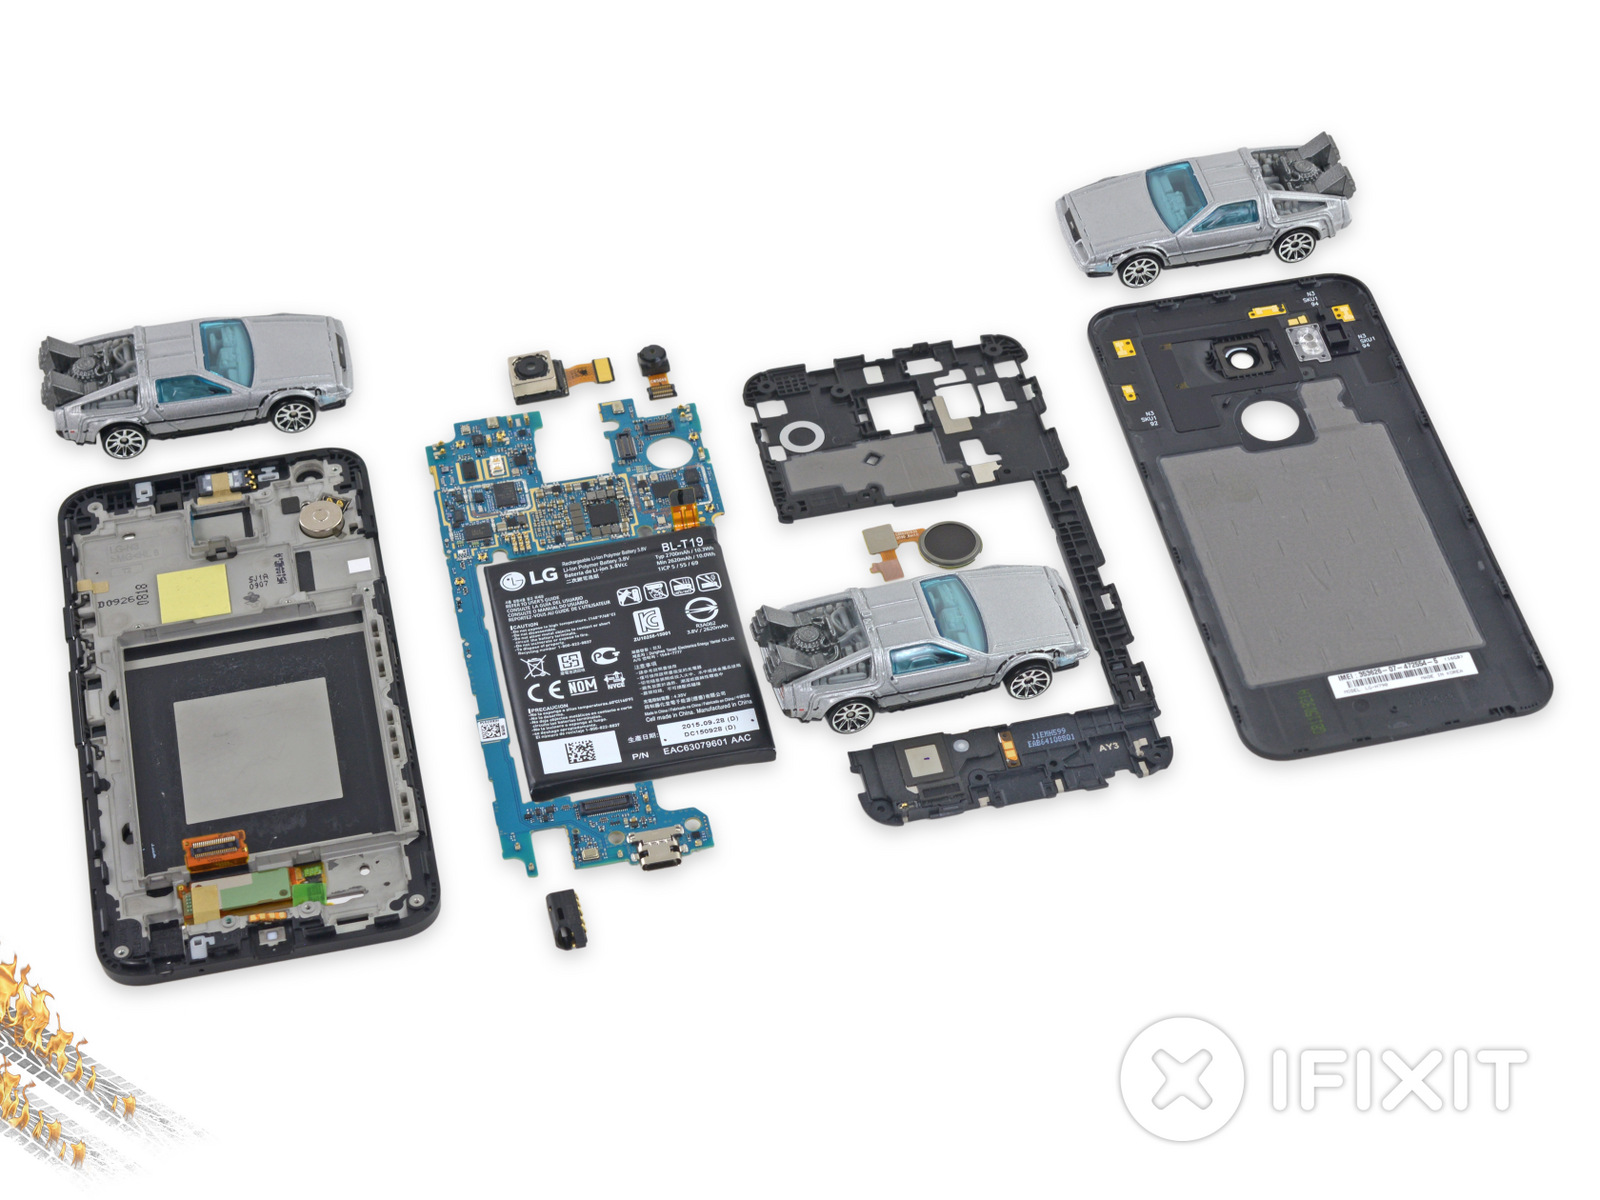 hight resolution of le nexus 5x passe chez ifixit il est un peu moins facile old cell phone parts old cell phone parts diagram